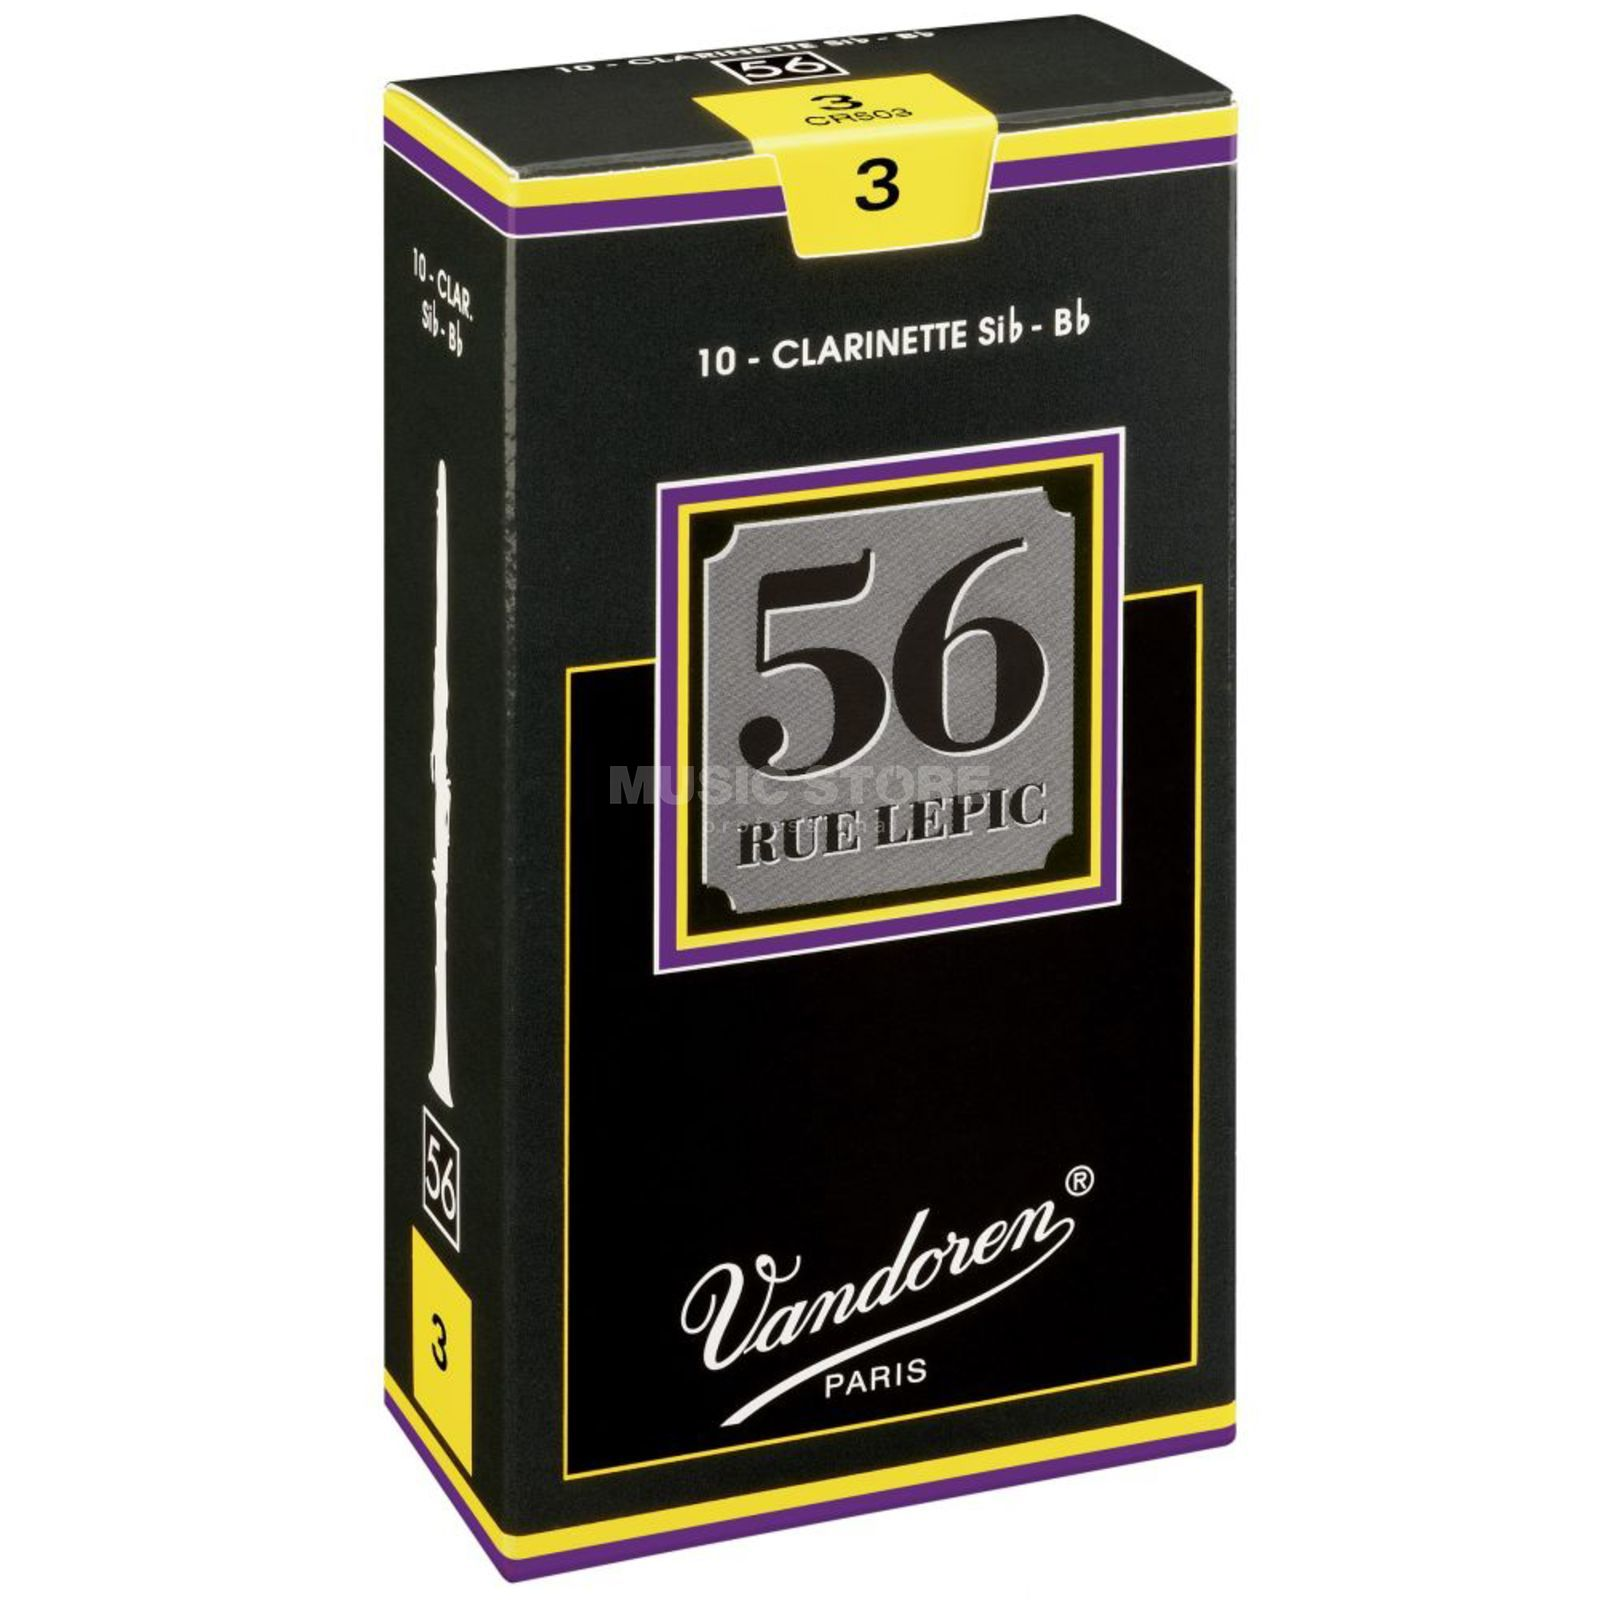 Vandoren 56 Rue Lepic Bb-Clarinet 2.5 Box of 10 Product Image